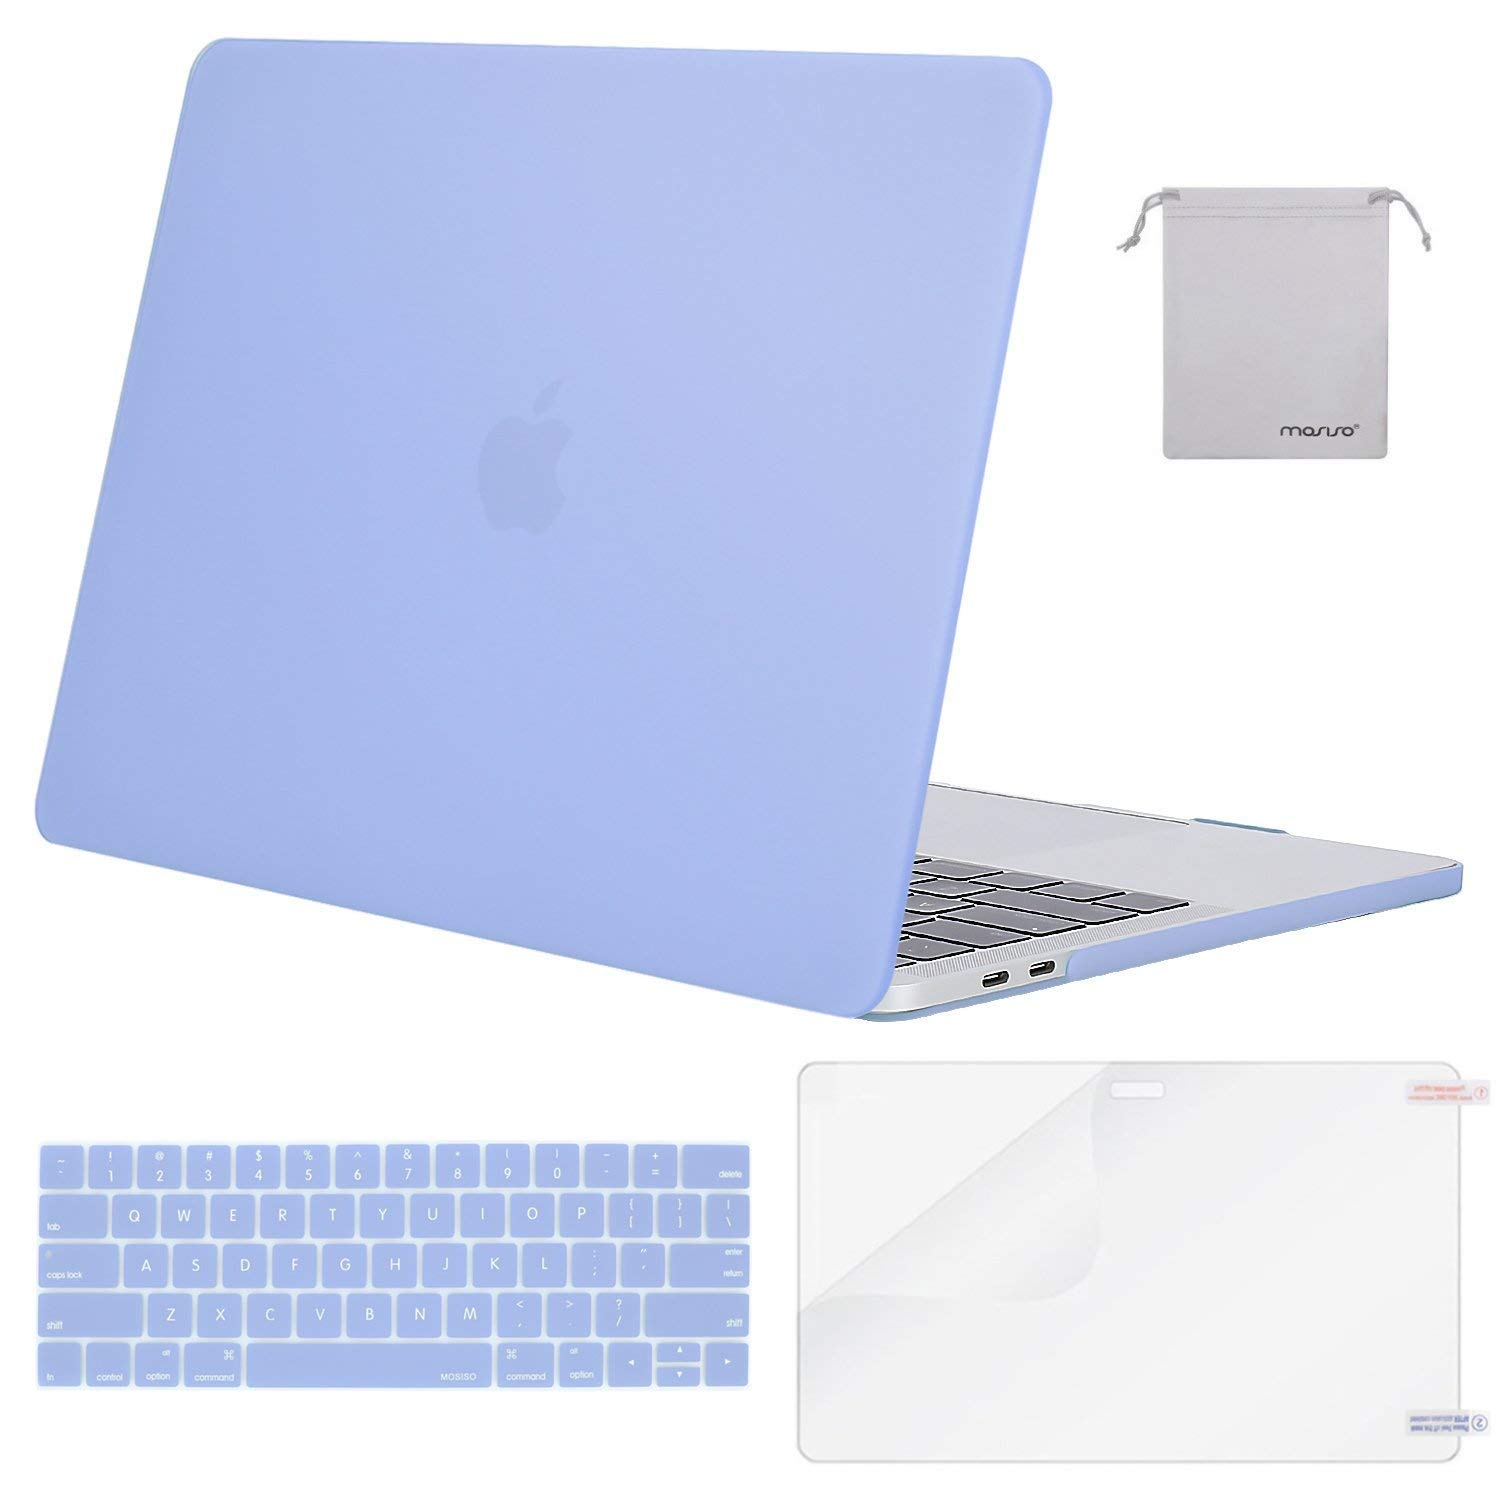 Mosiso MacBook Pro 15 Case 2018 2017 2016 Release A1990/A1707, Plastic Hard Shell with Keyboard Cover with Screen Protector with Storage Bag for Newest MacBook Pro 15 inch with Touch Bar, Navy Blue